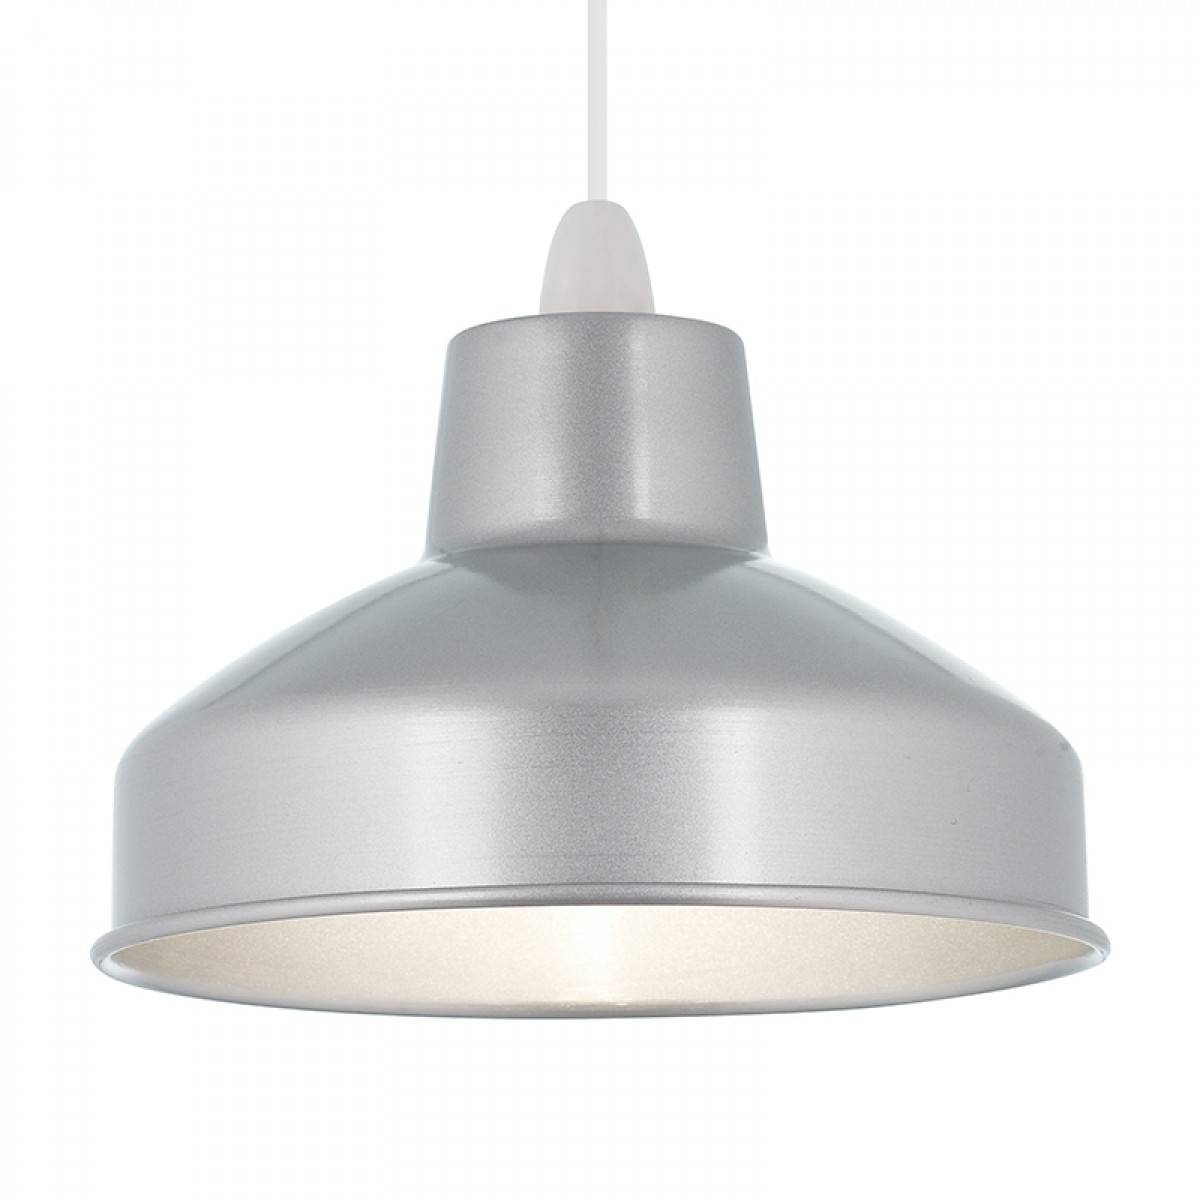 Aluminium Non Electric Pendant - Non-Electrical Pendants - Ceiling for Non Electric Pendant Ceiling Lights (Image 5 of 15)